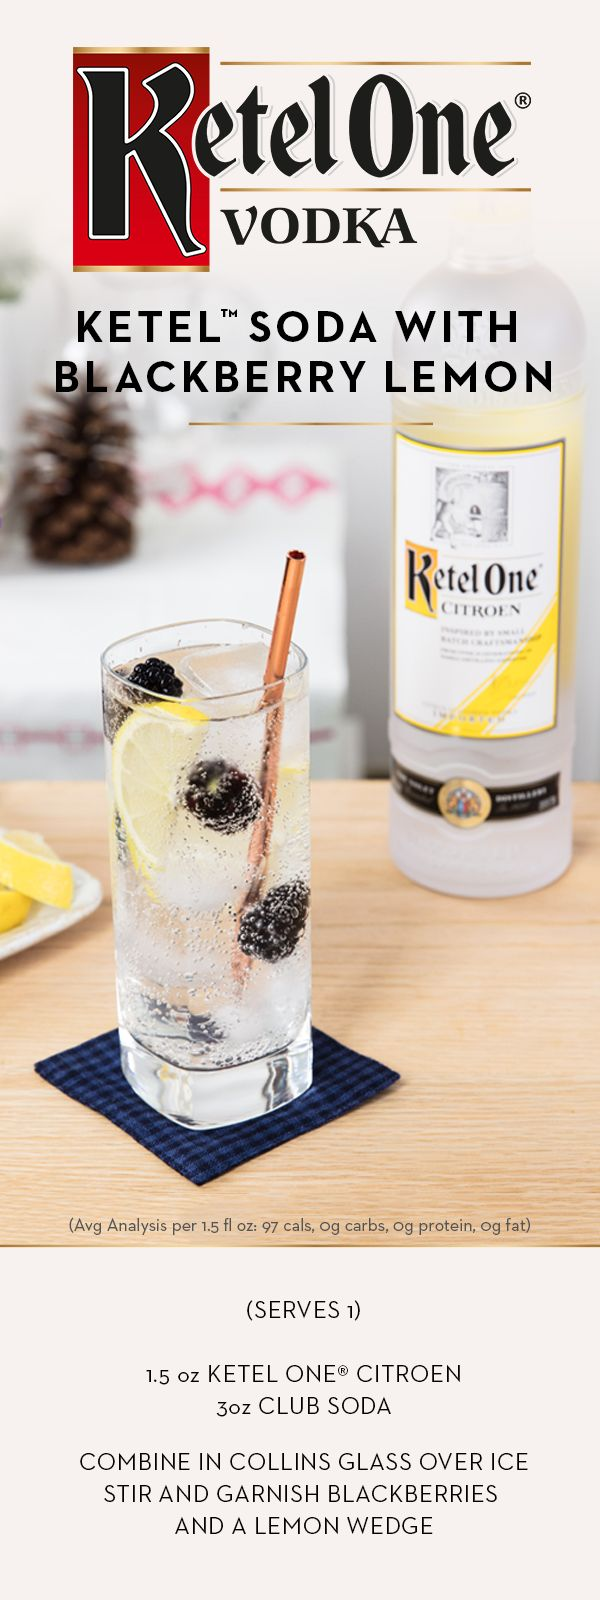 In a season full of sweets, reach for Ketel One® Citroen Vodka, made with 100% non-GMO grain and infused with the essence of lemons and limes. There's no added sugar, so mix up a holiday cocktail, the Ketel™ Soda with Blackberry and Lemon. Add 1.5 oz of Ketel One® Citroen Vodka in a Collins or rocks glass over ice. Top with 3 oz club soda, garnish with blackberries and lemon wedge, and enjoy.